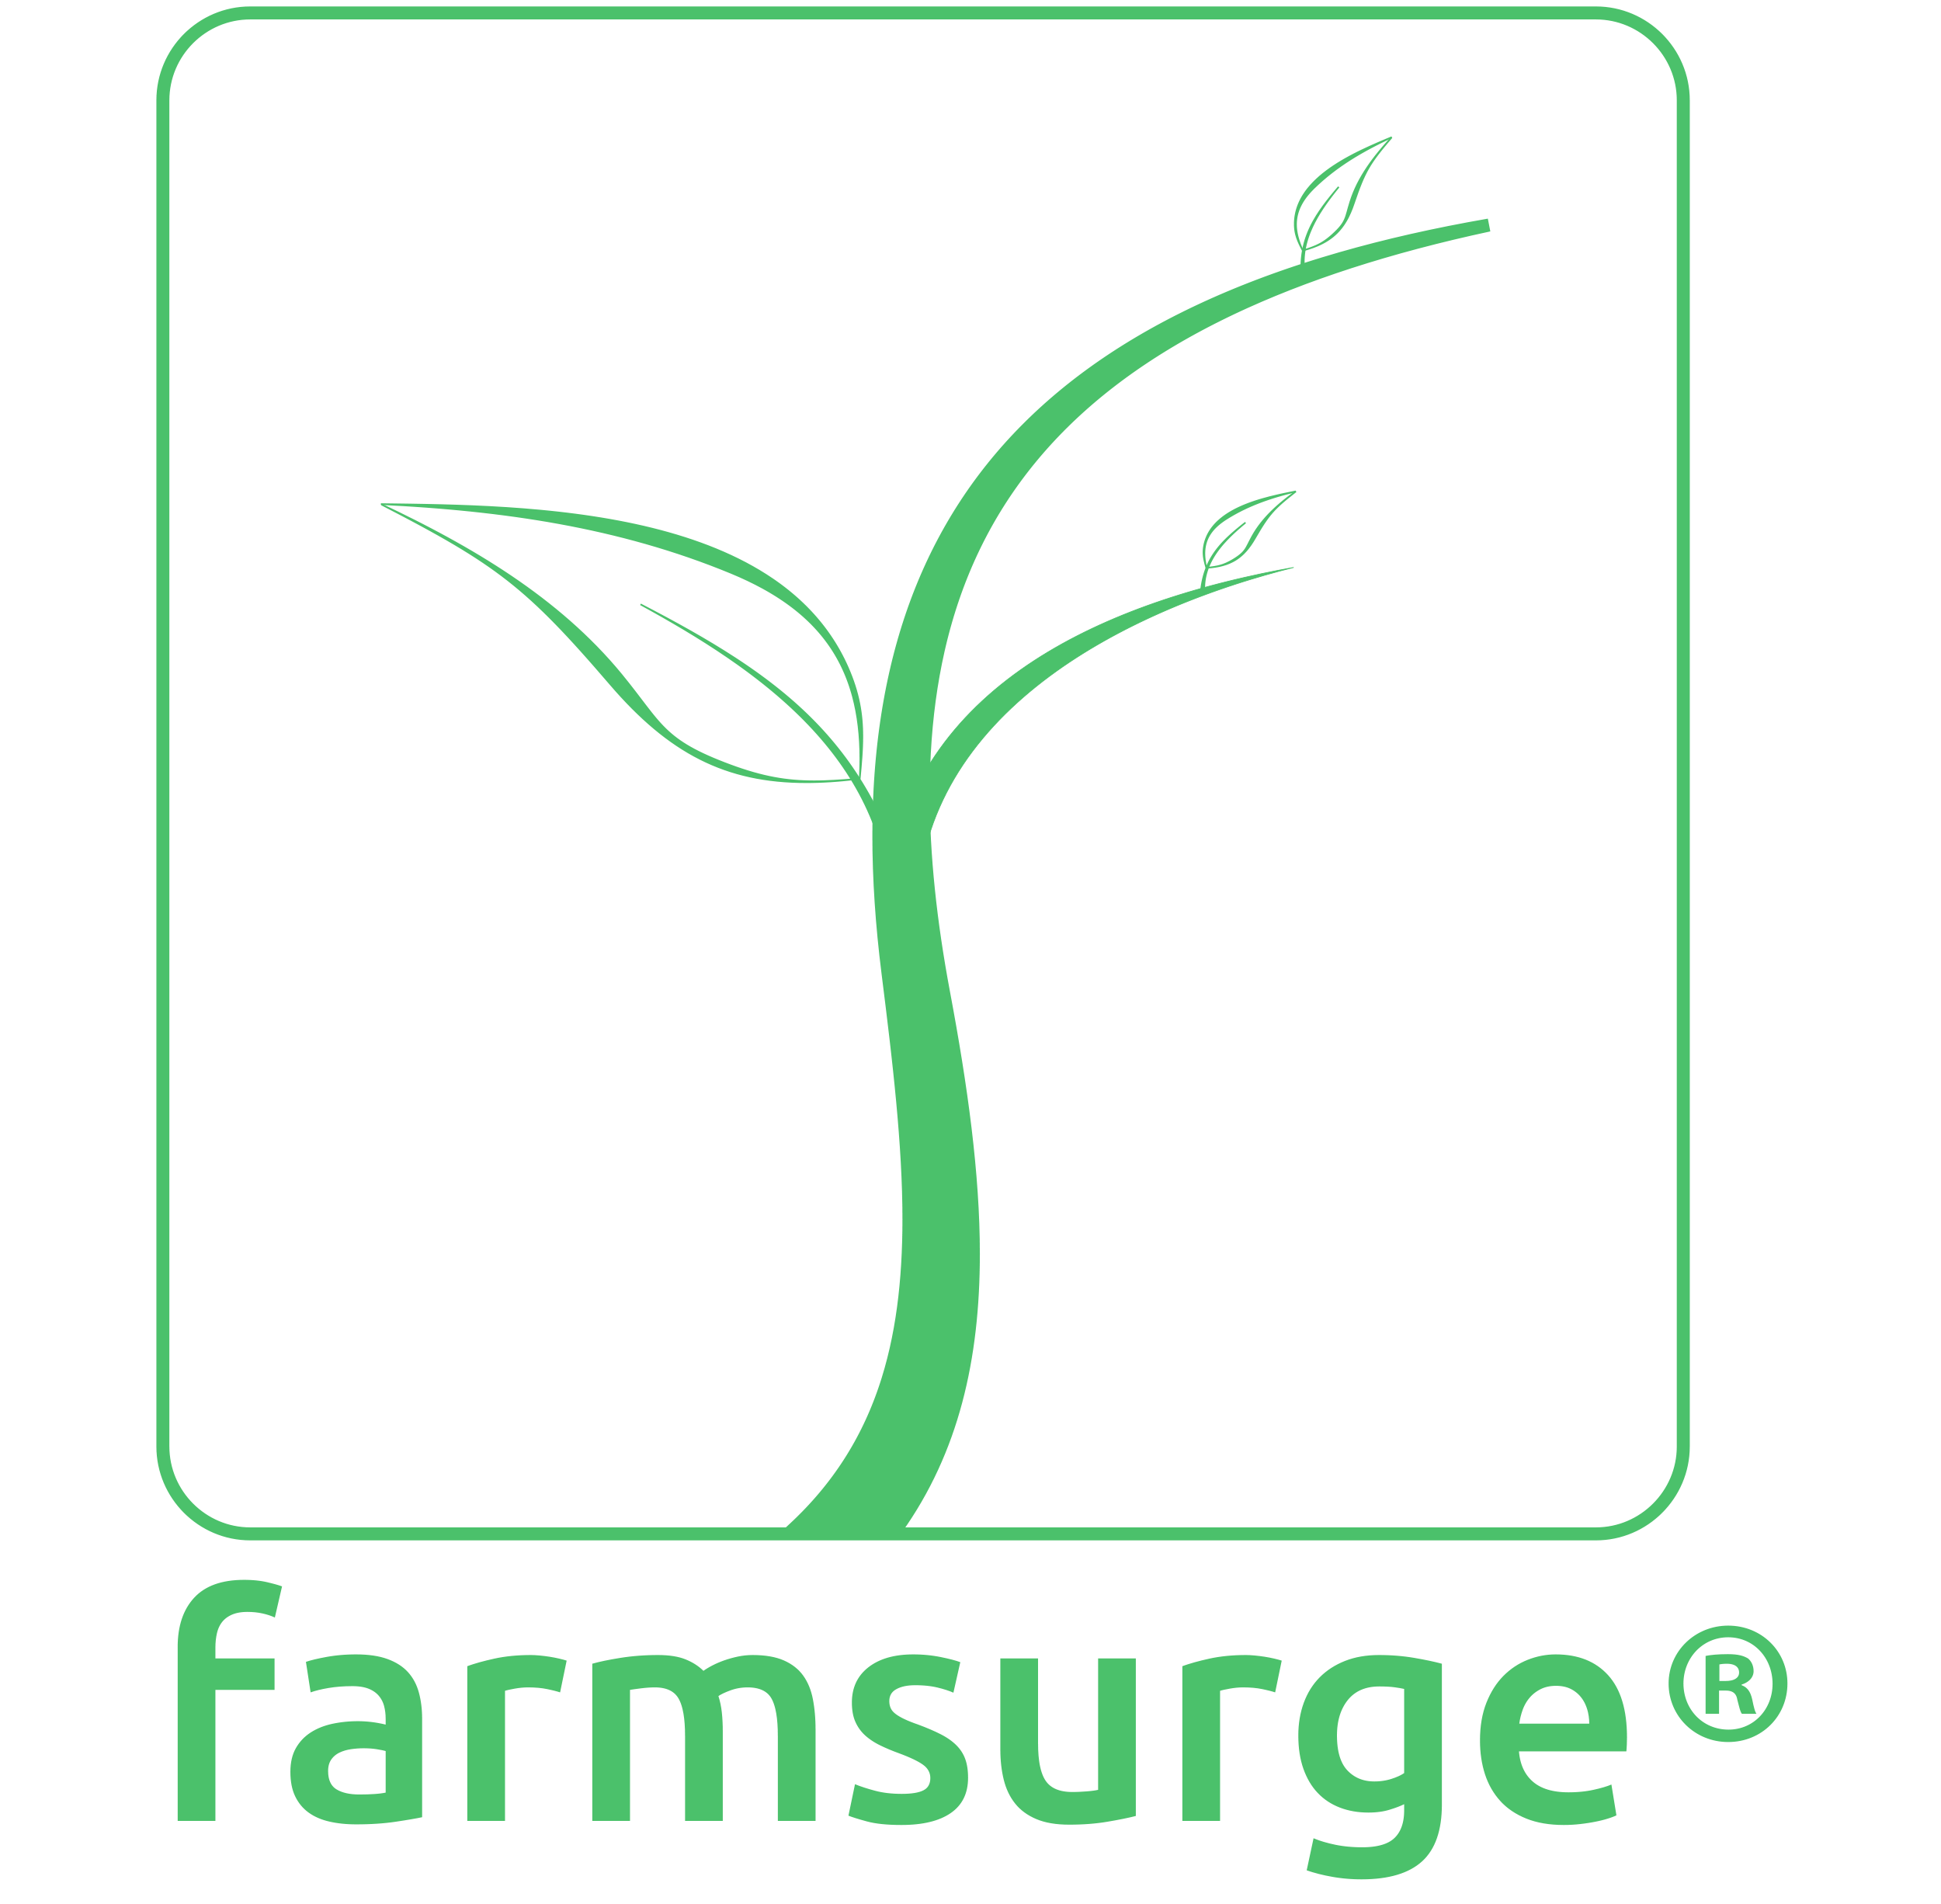 Farmsurge